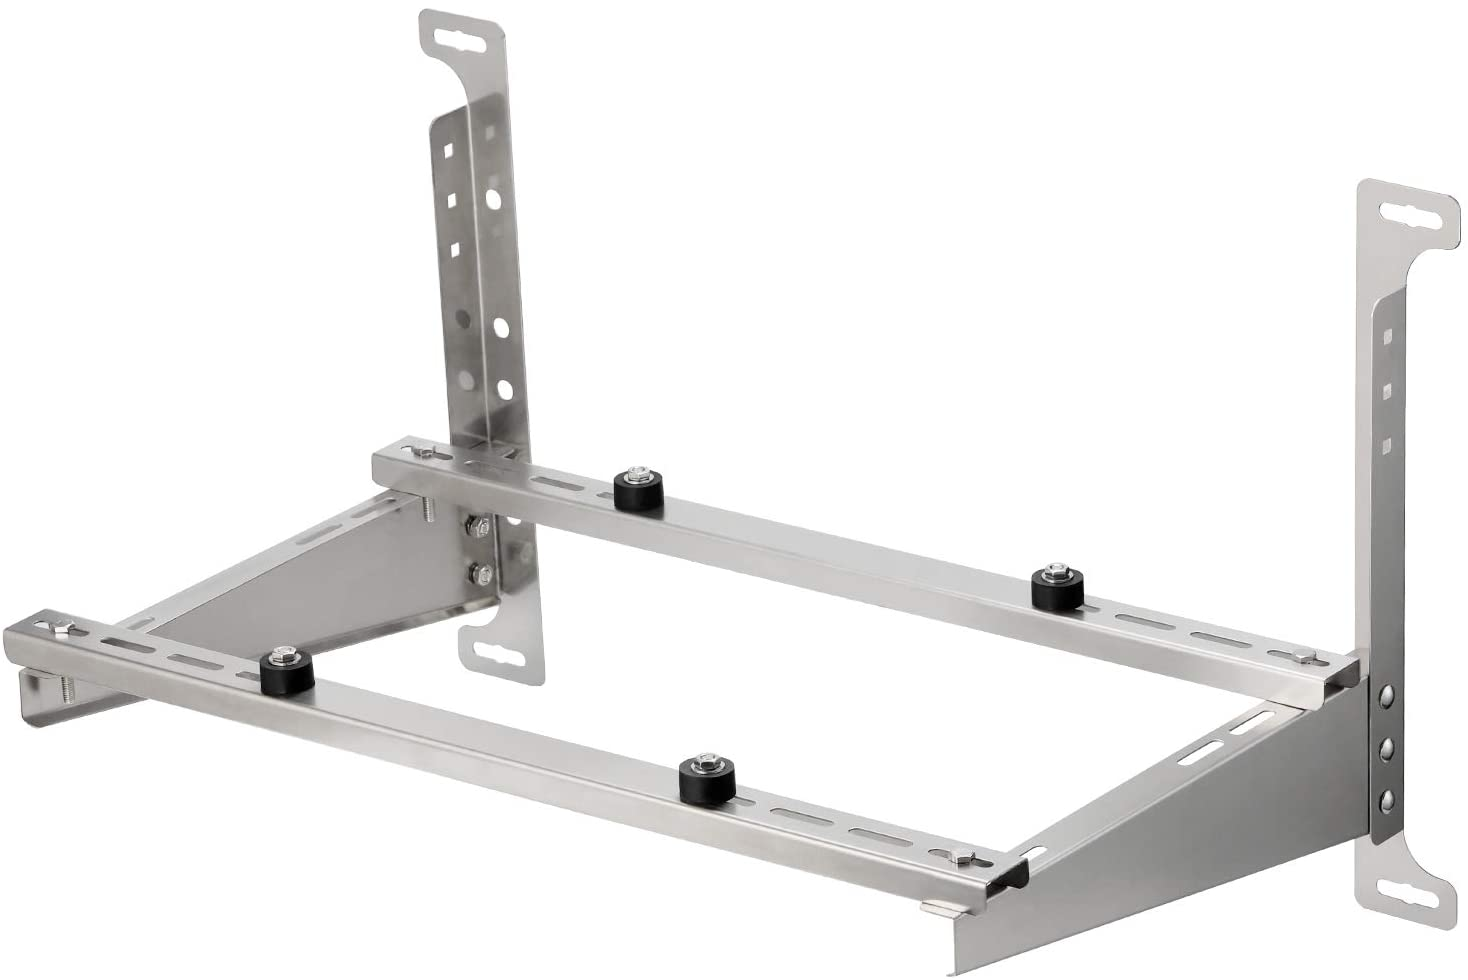 TURBRO Wall Mount Stand for Mini Split Ductless Air Conditioner Heat Pump System, Sturdy Stainless Steel Bracket w/Dual Cross-Bars, Support Condenser up to 450 lbs (7,000-24,000 BTU)